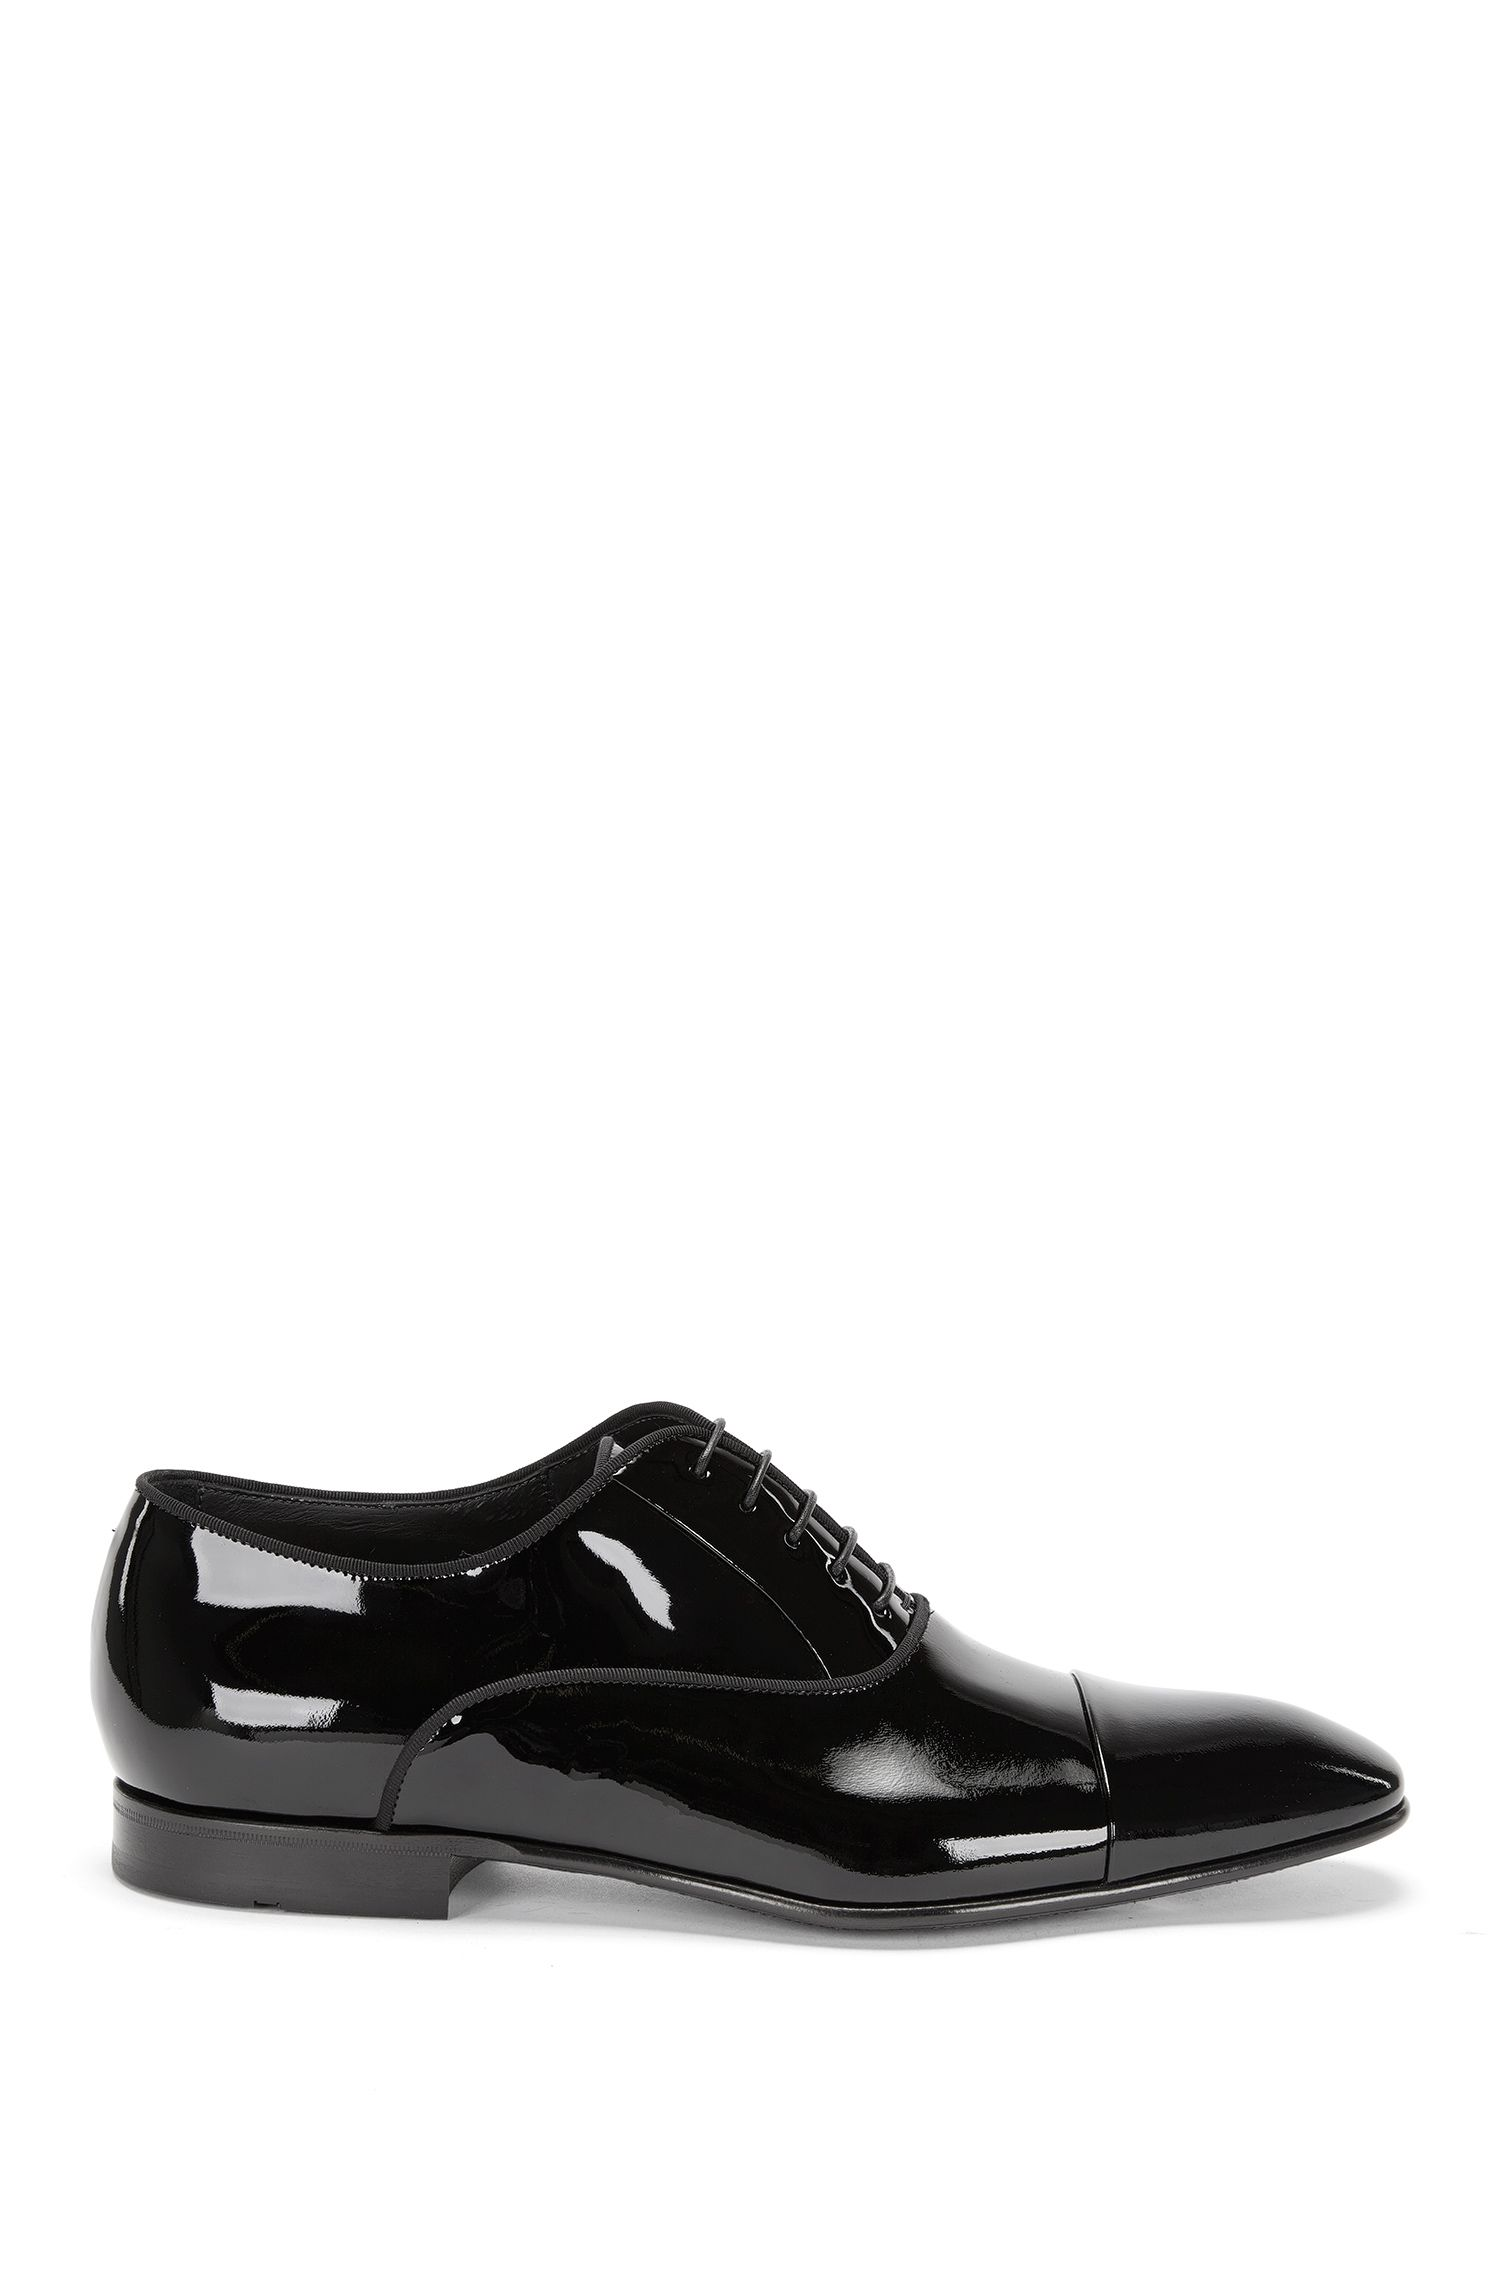 Italian Patent Leather Oxford Dress Shoe | Evening Oxfr Patct